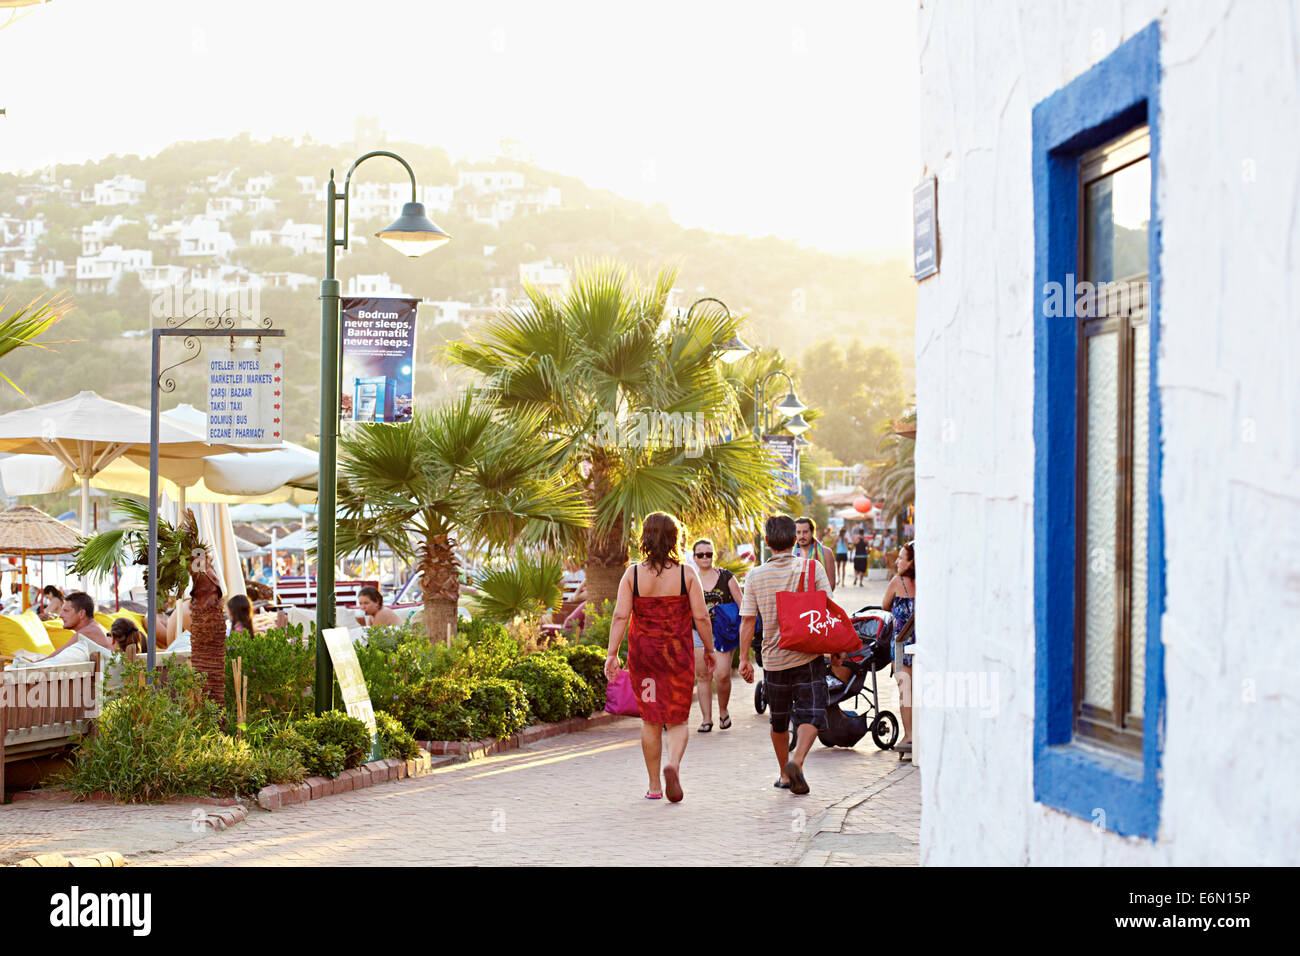 Street view with blue window couples walking - Stock Image